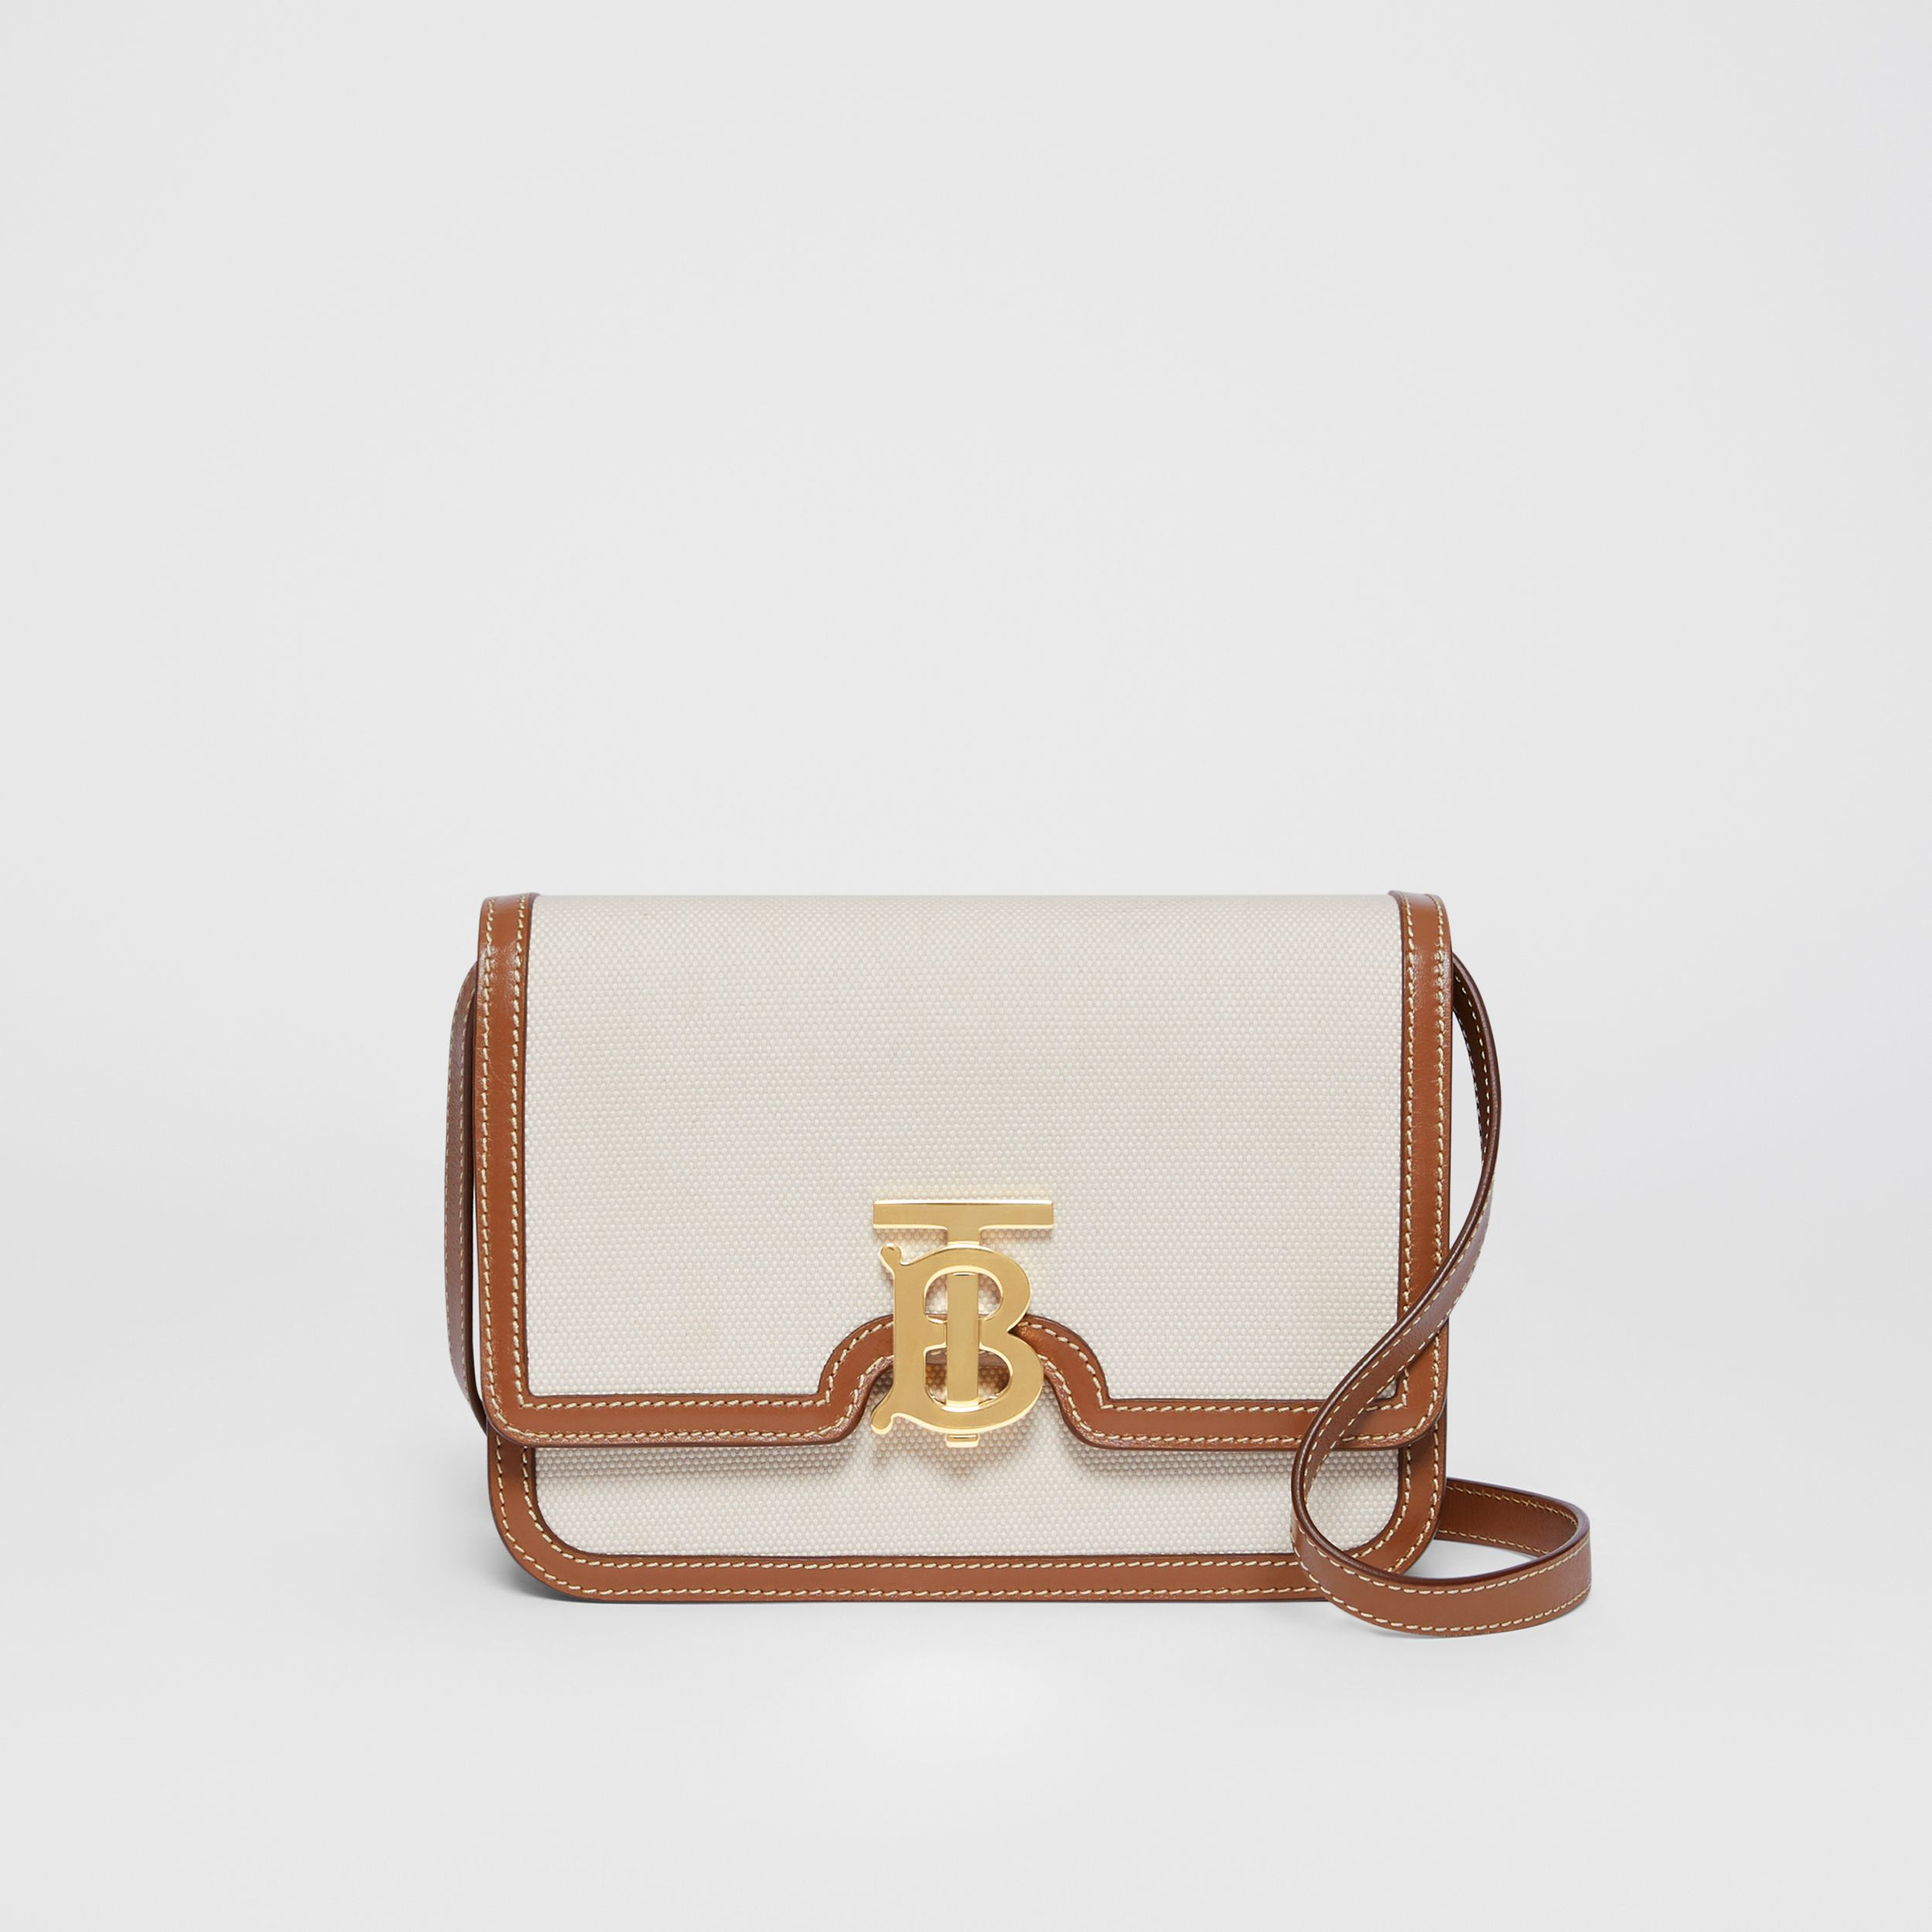 Small Two-tone Canvas and Leather TB Bag in Natural/malt Brown - Women | Burberry United Kingdom - 1